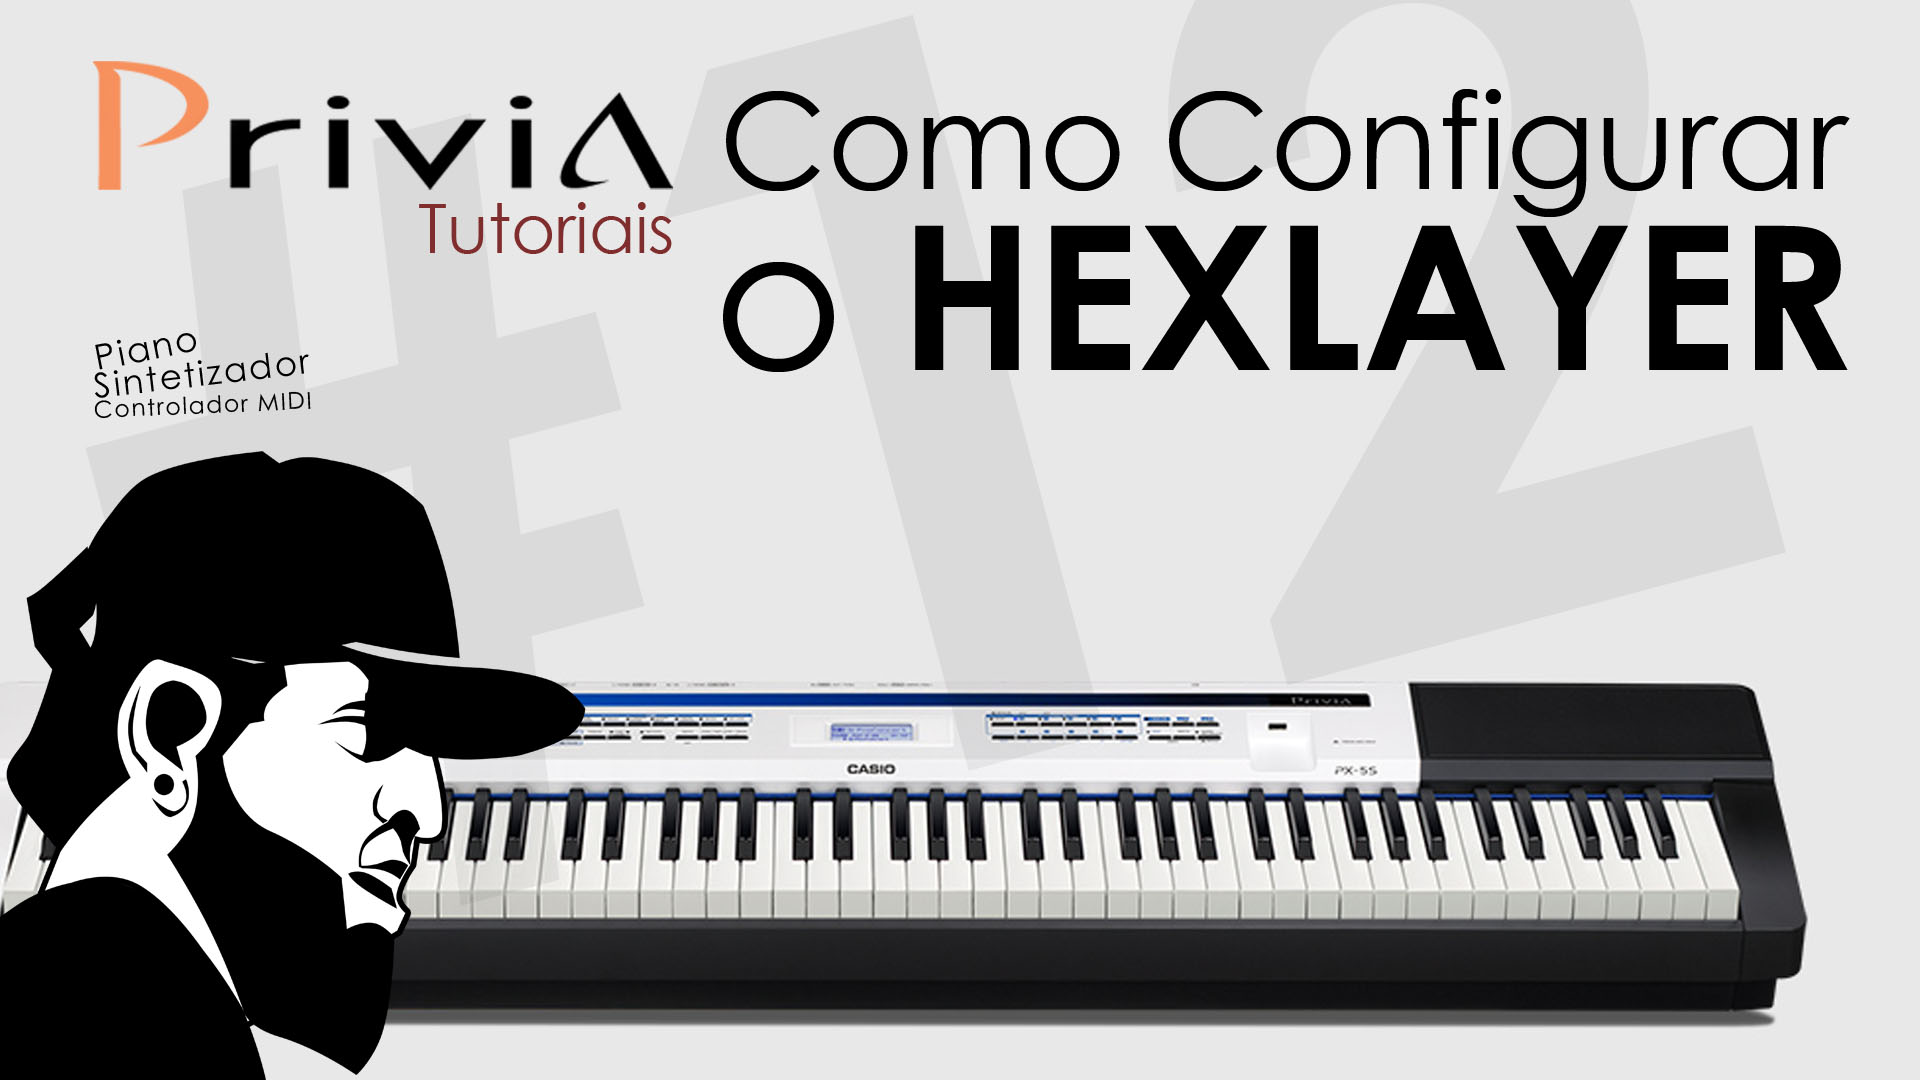 Tutorial Casio Privia PX-5S #12 – Como Configurar os Hexlayers?